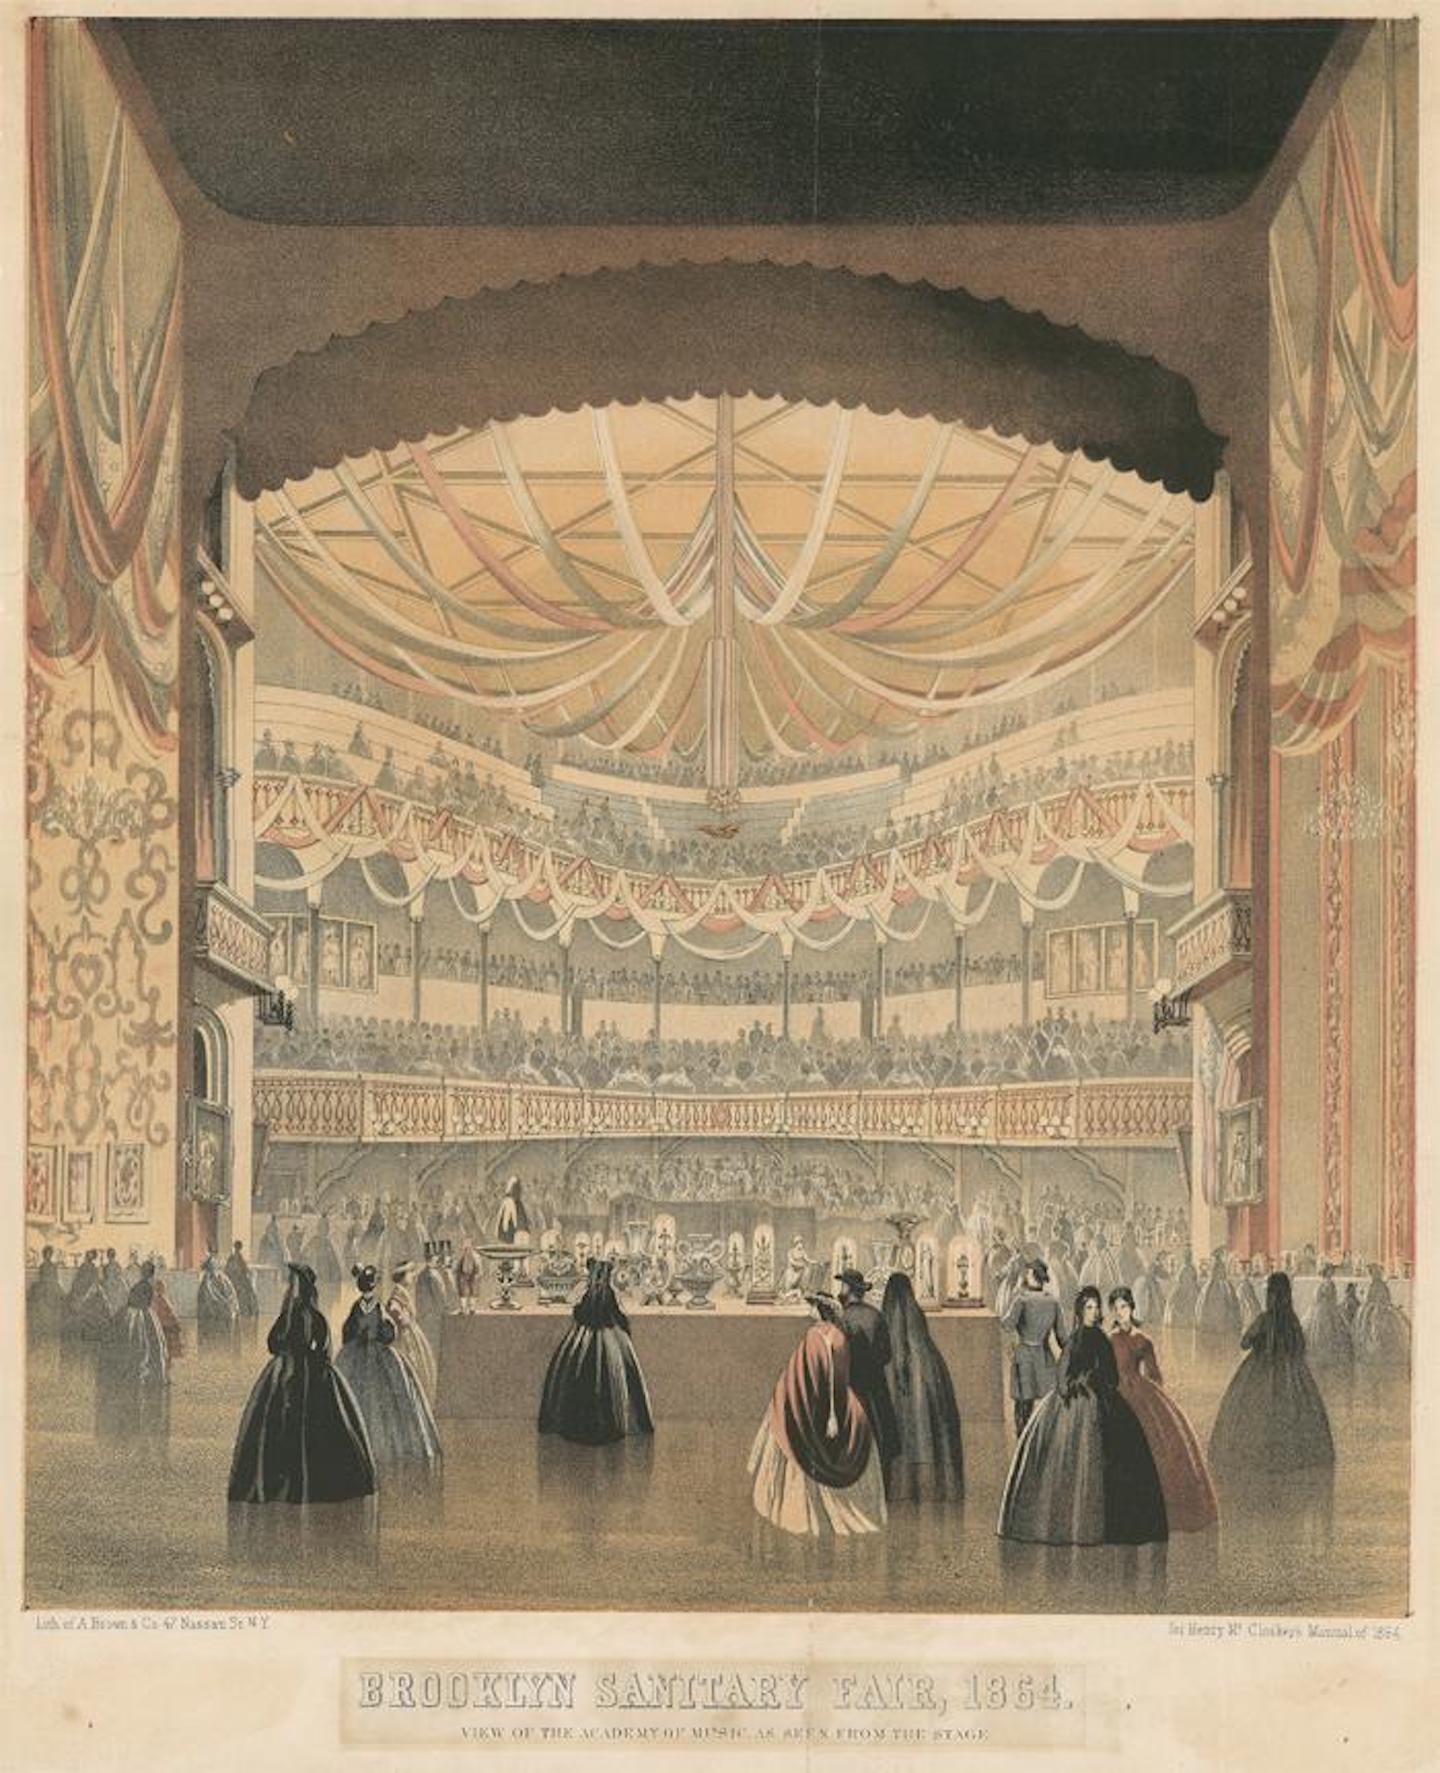 Illustration of the Brooklyn and Long Island Sanitary Fair, 1864. Images courtesy of BAM Hamm Archives